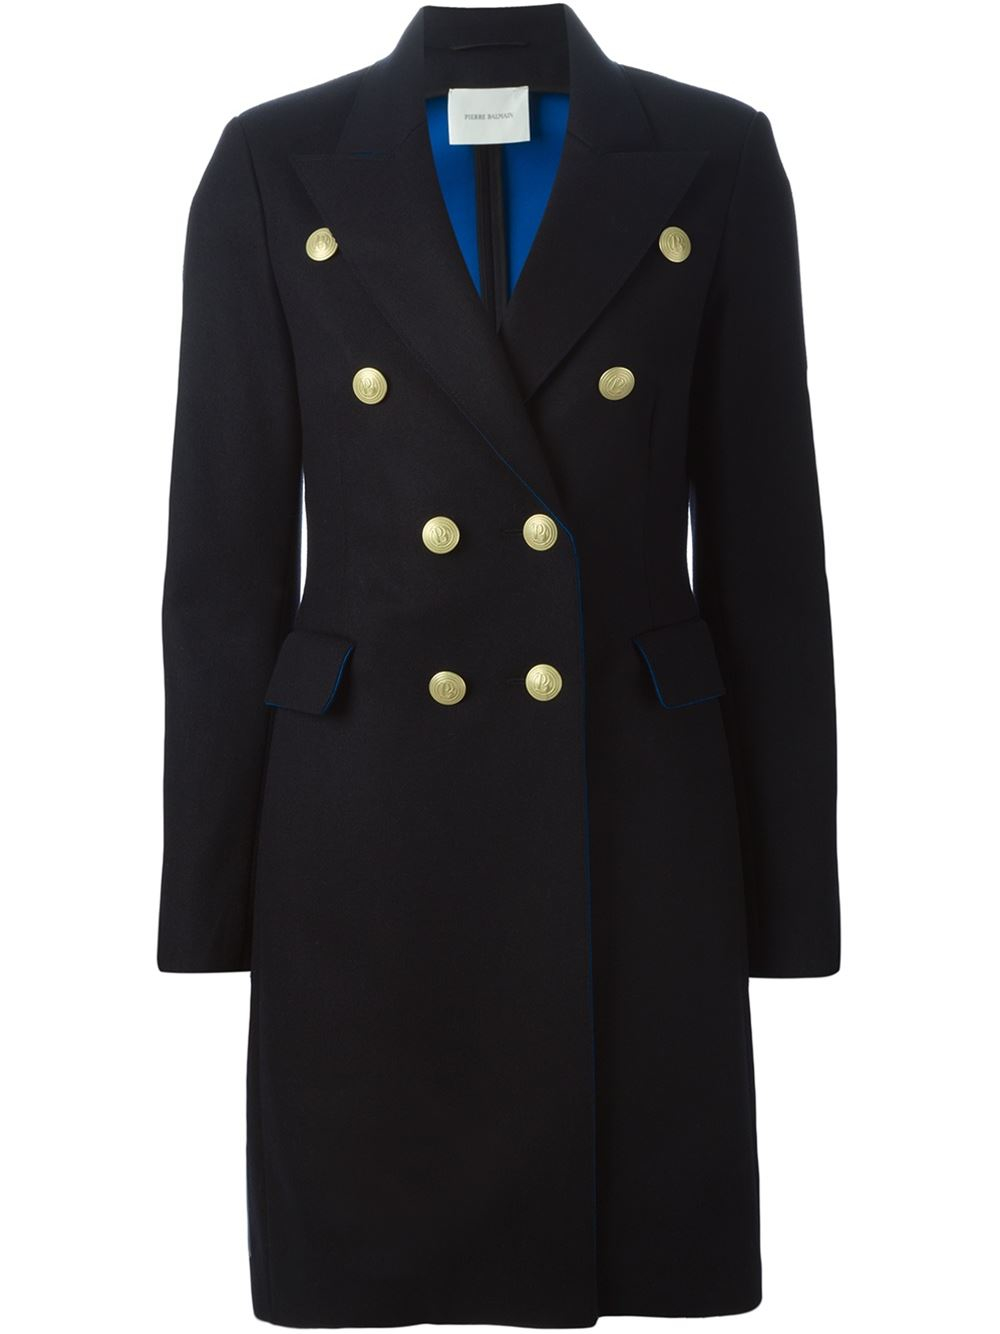 Balmain Military Coat With Silver Buttons in Black | Lyst